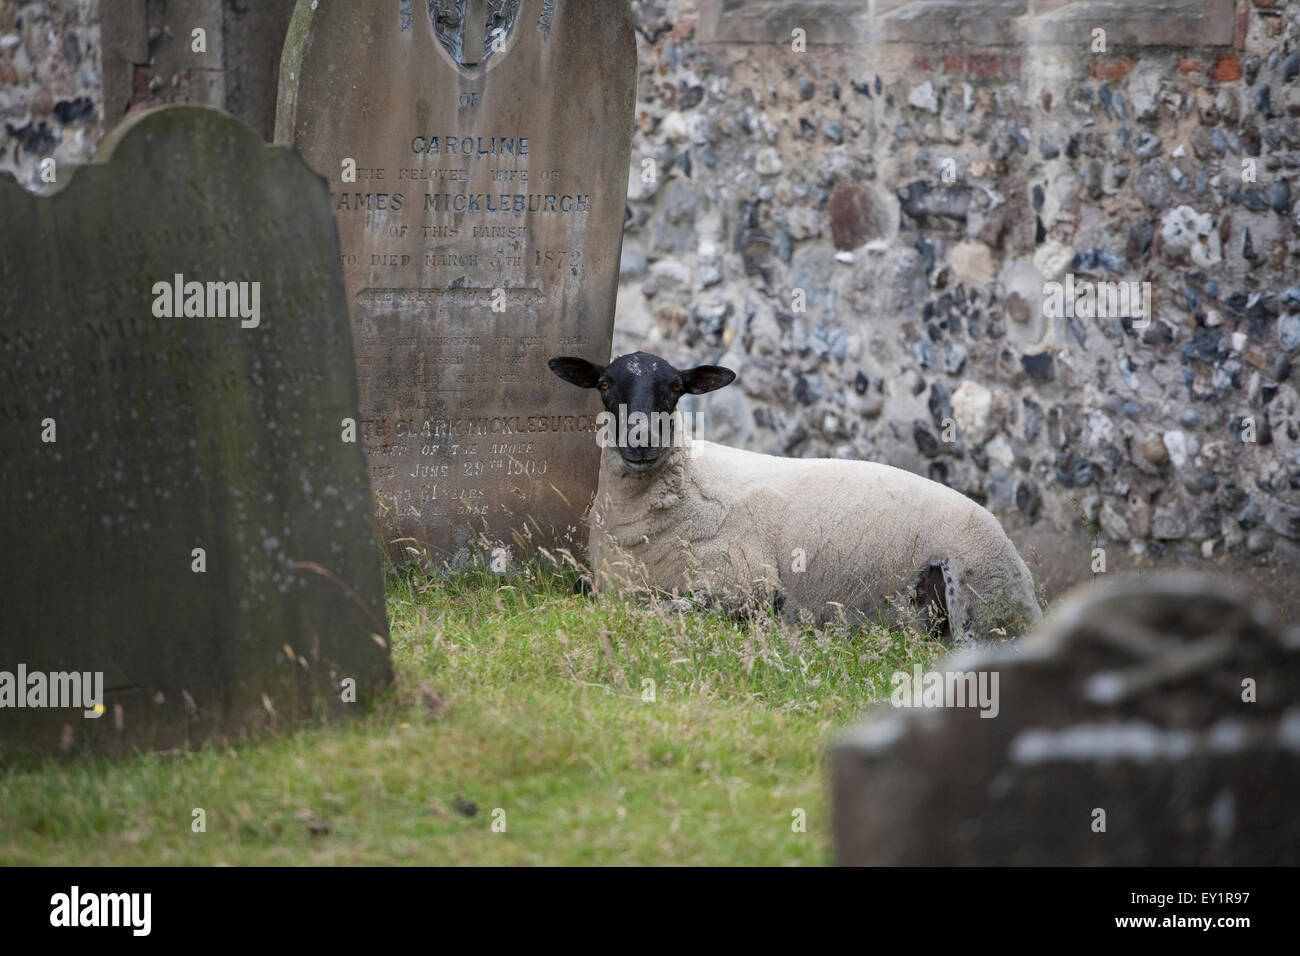 Grave Lamb Stock Photos & Grave Lamb Stock Images - Alamy